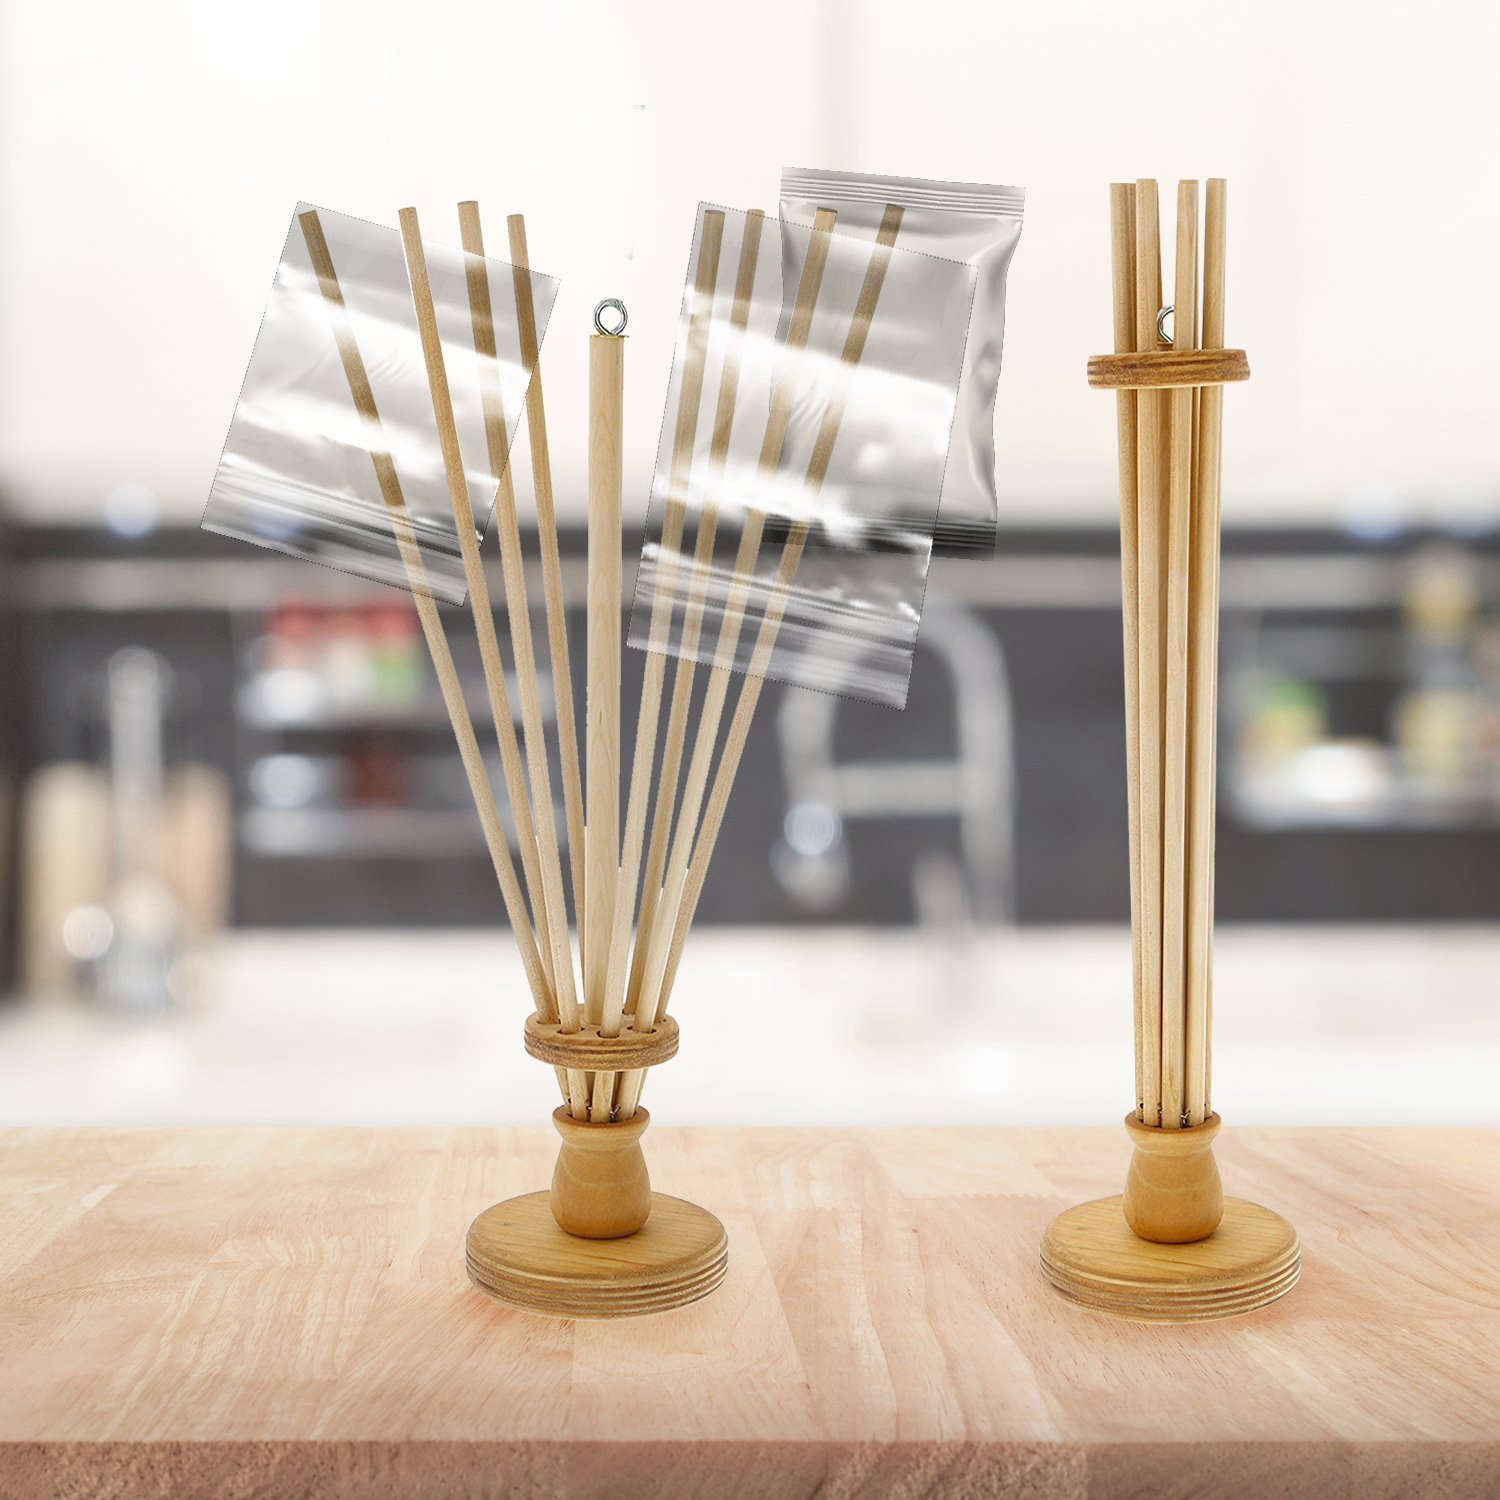 a wooden drying rack for plastic bags